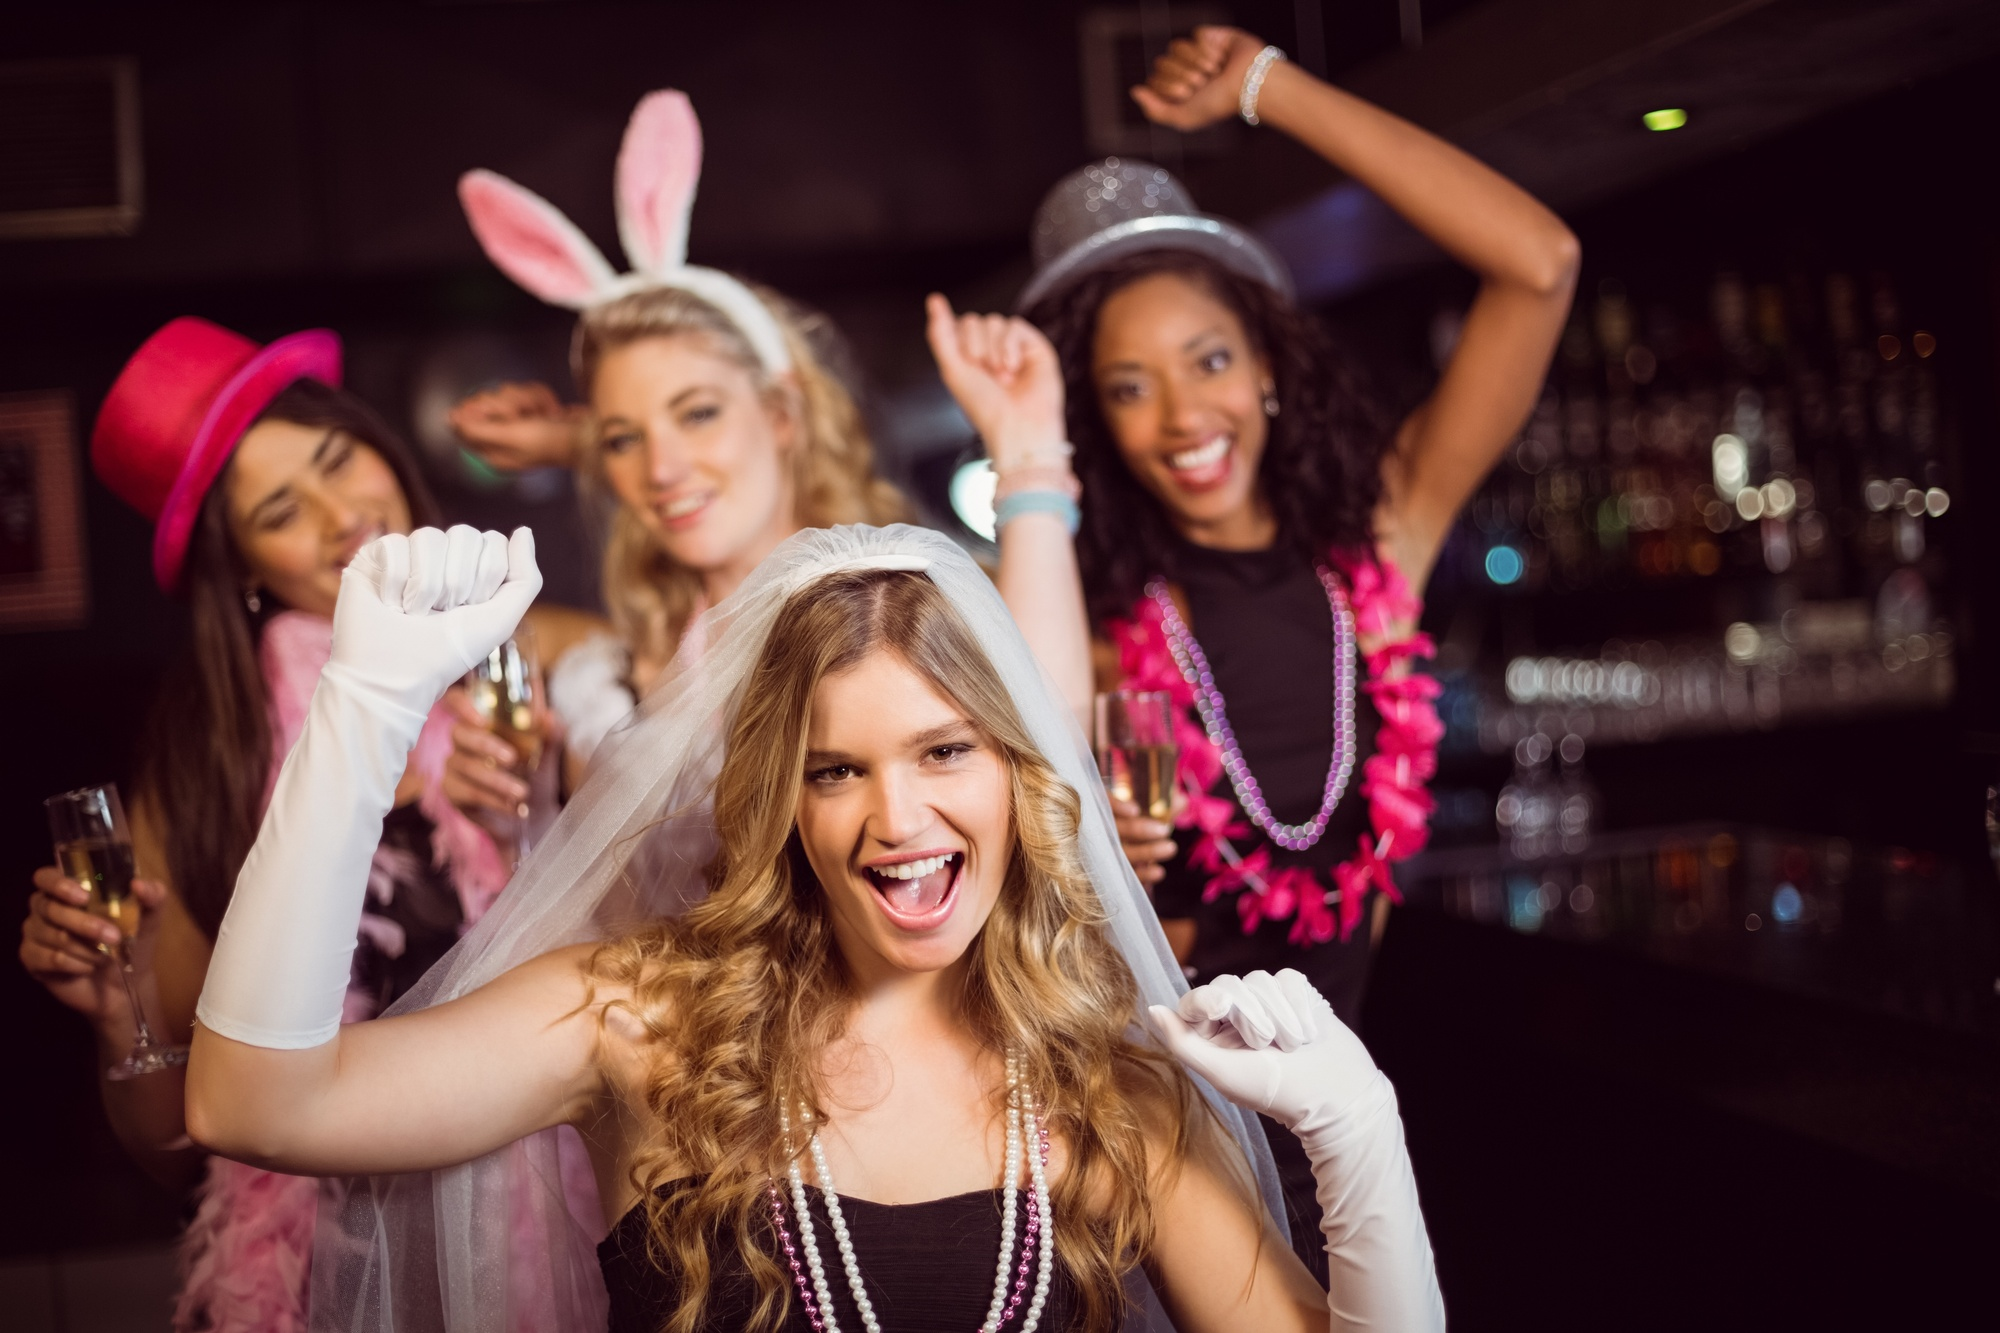 Their women bachelorette party at percent cheat what of These are